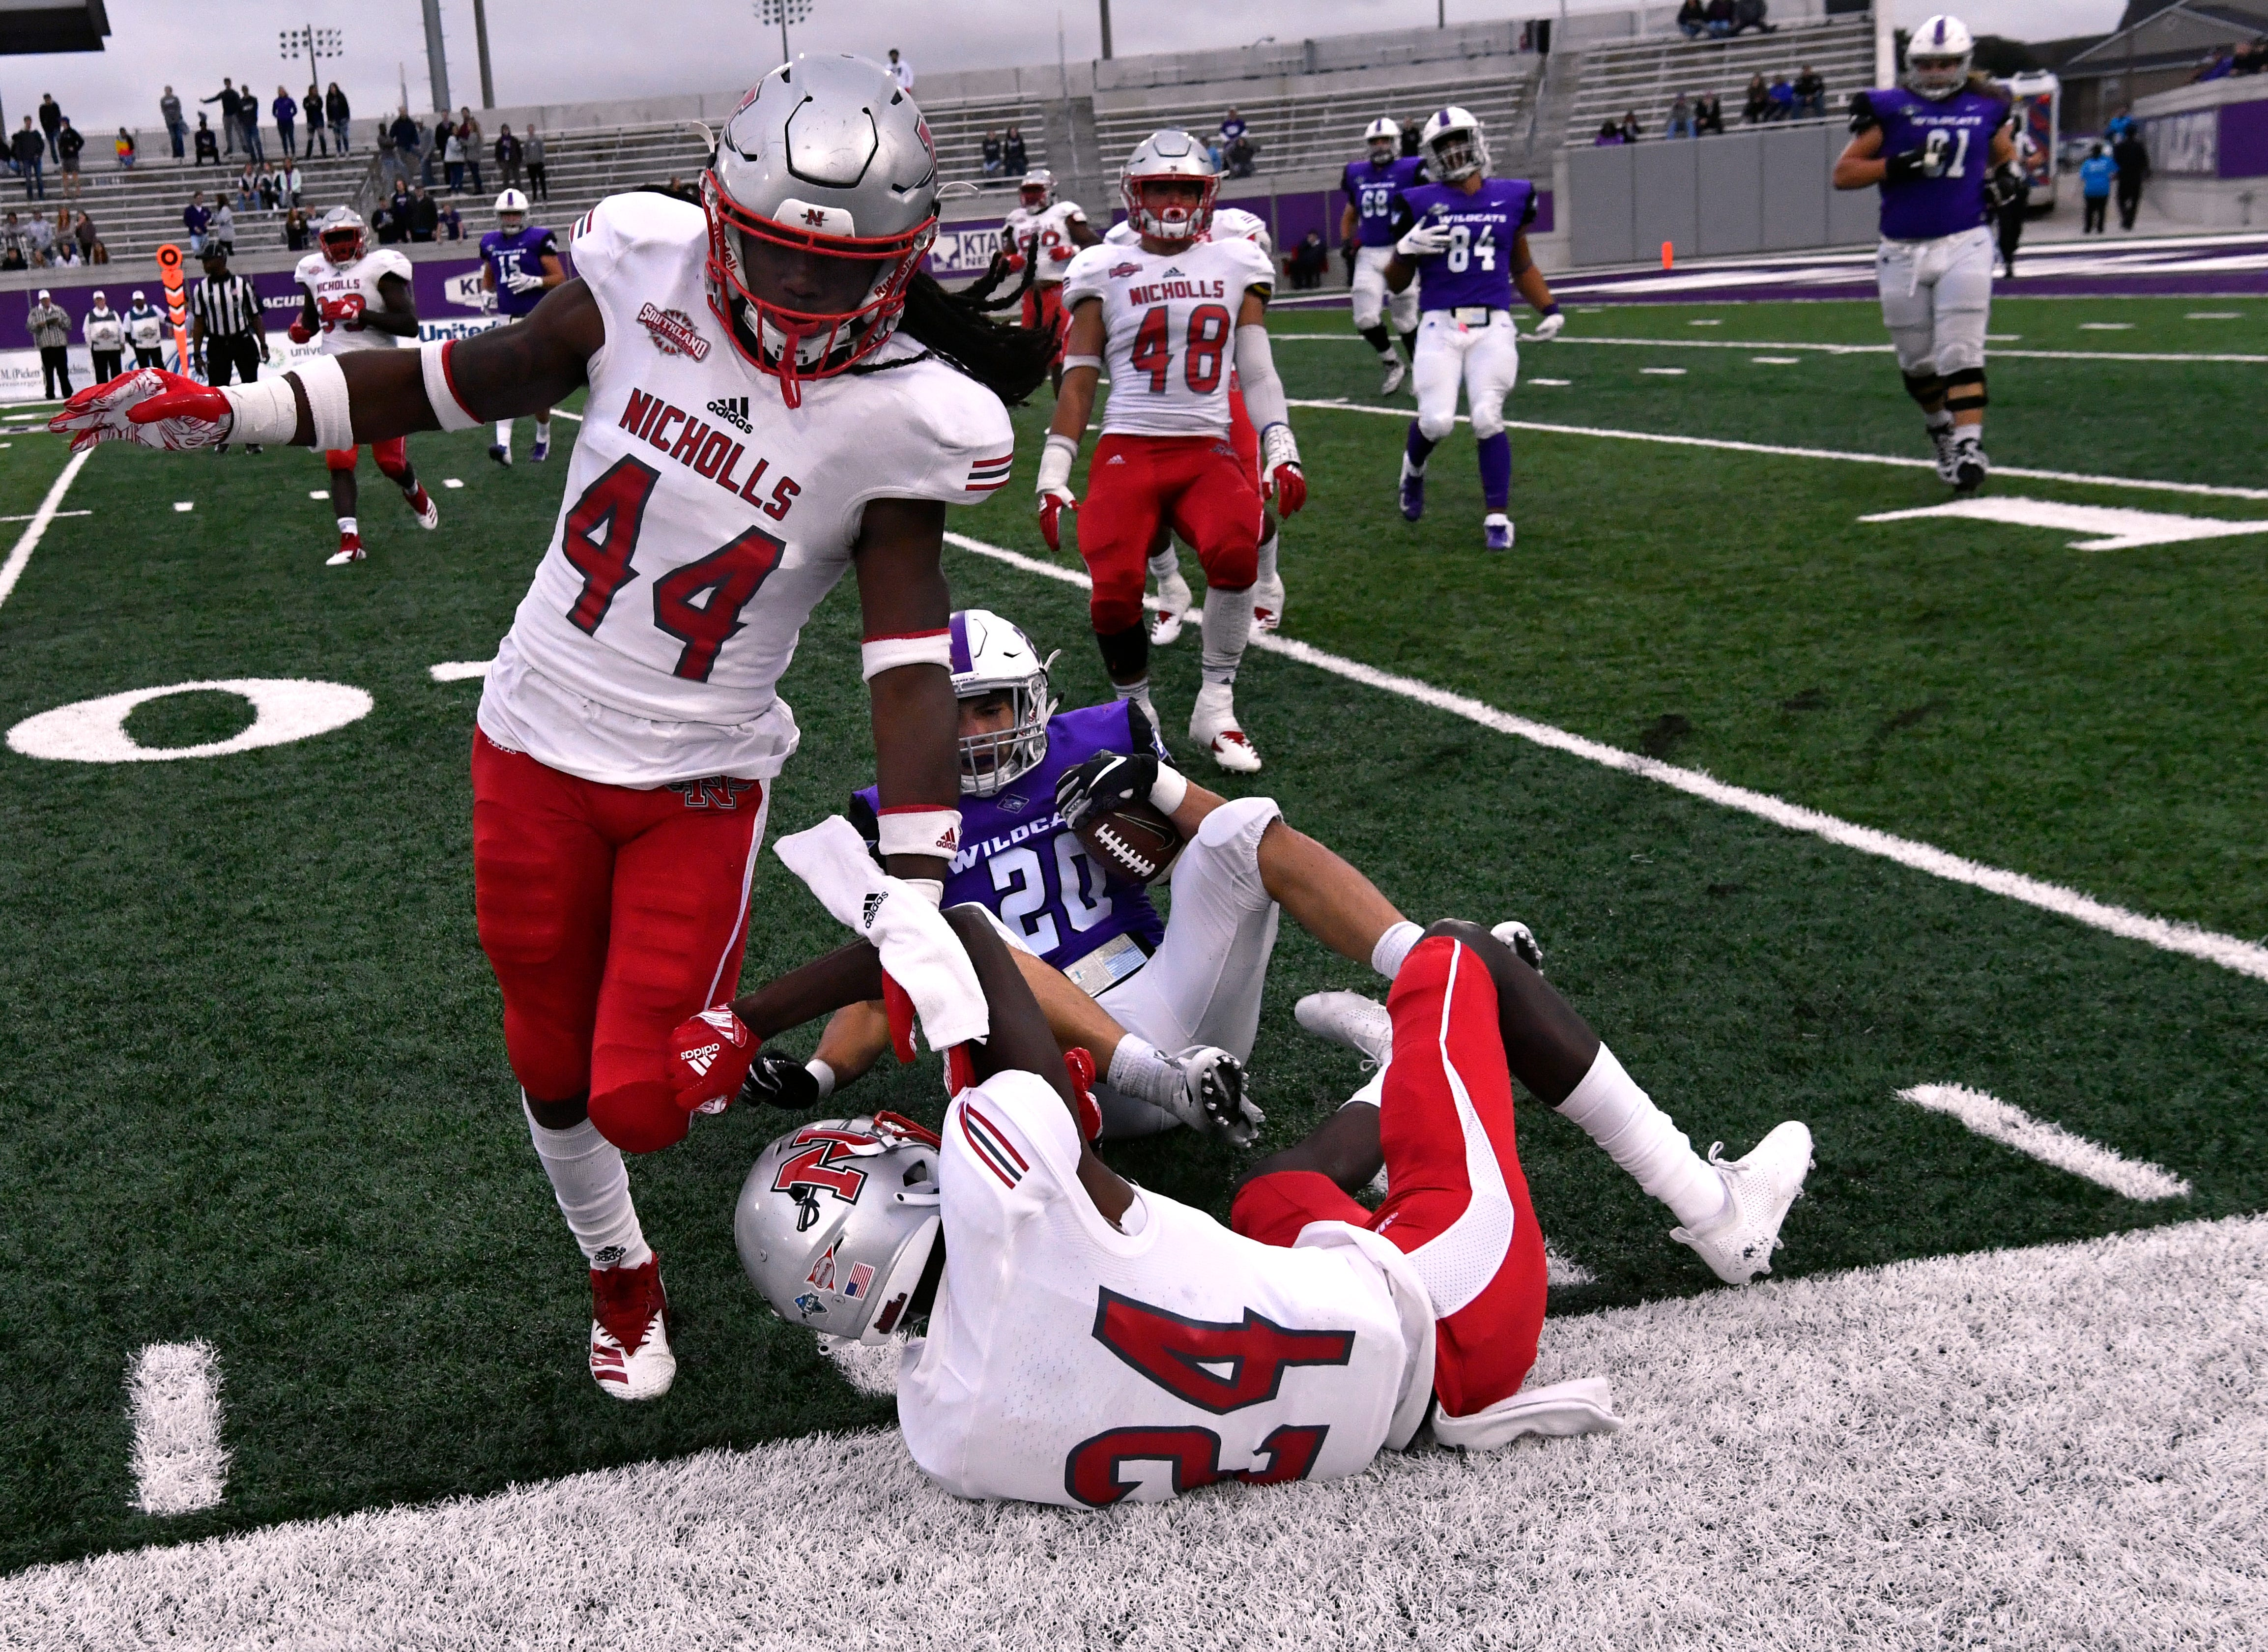 Nicholls University defensive players Ahmani Martin (left) and Darren Evans tumble out of bounds after tackling Wildcats running back Billy McCrary in the final minutes of Saturday's game Oct. 13, 2018. Final score was 28-12, ACU.